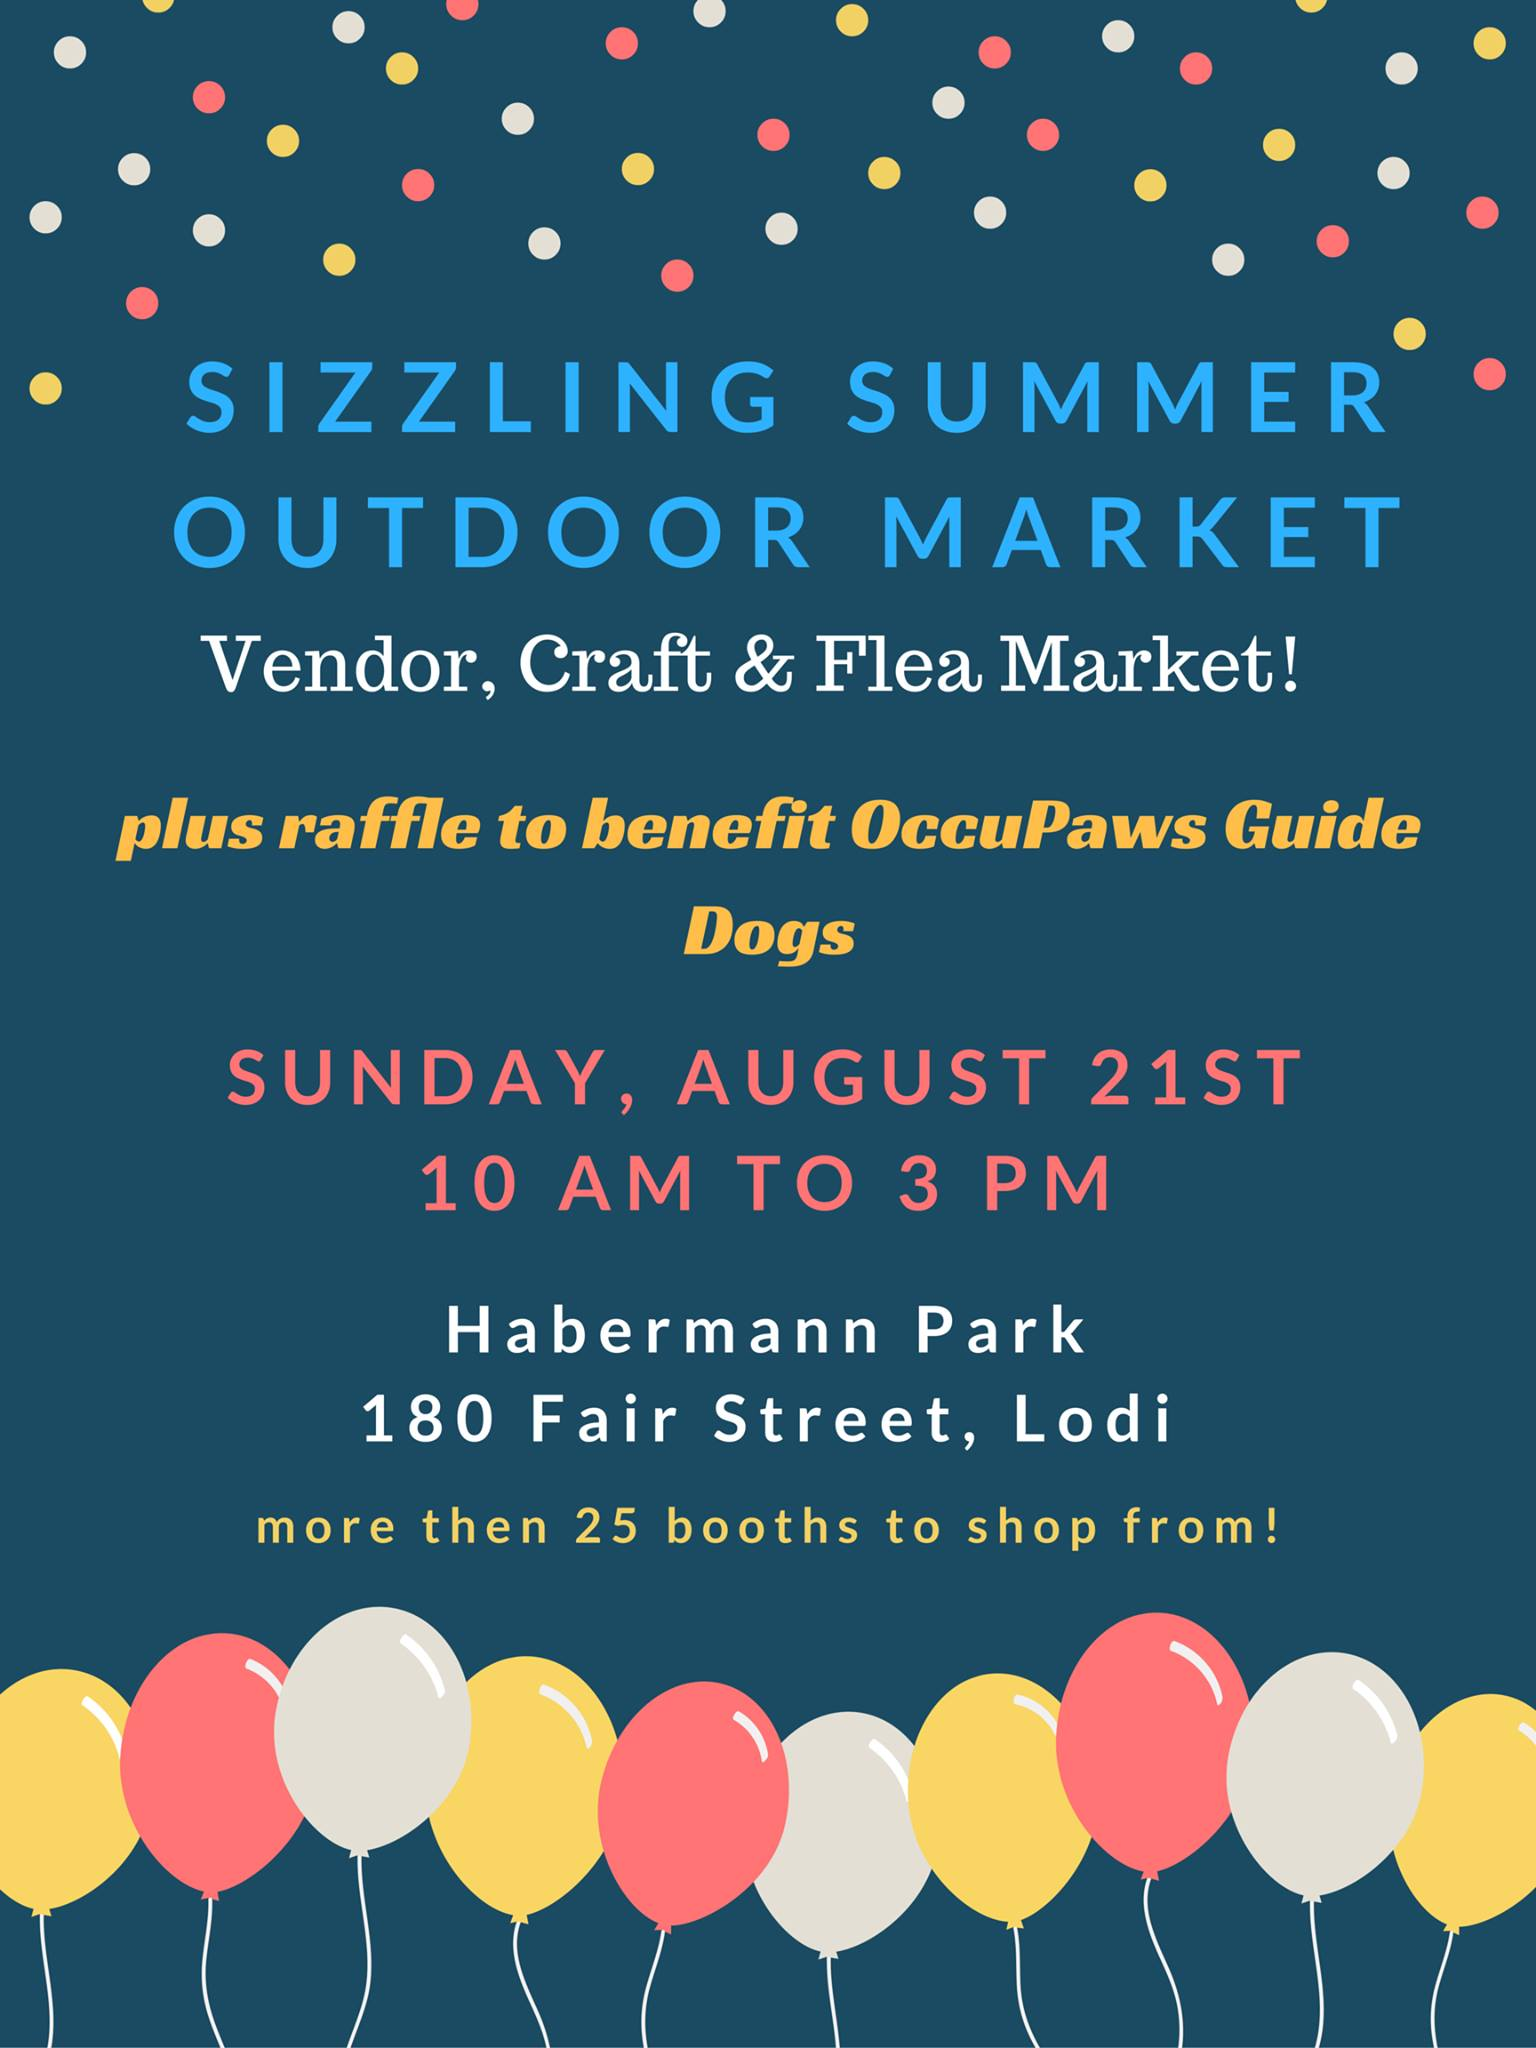 Sizzling Summer Outdoor Market for OccuPaws @ Haberman Park | Lodi | Wisconsin | United States